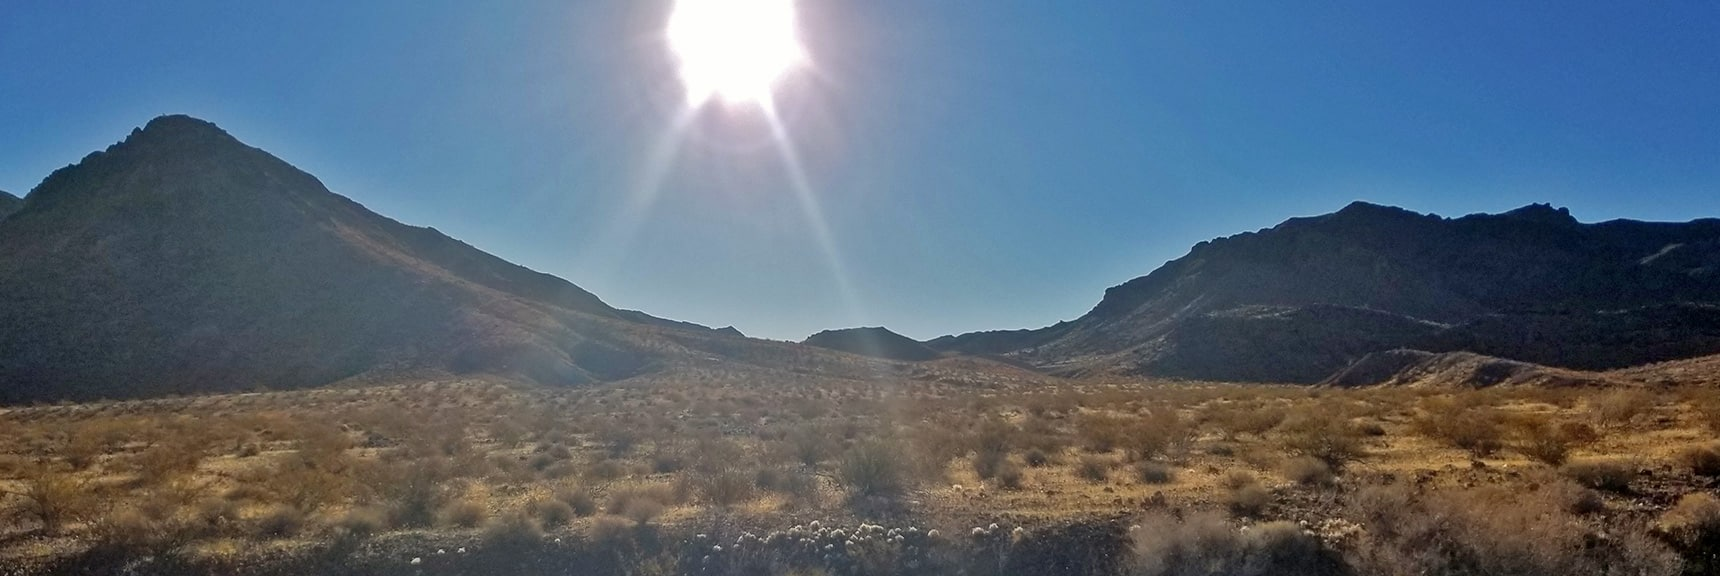 Starting Up the Route from Northshore Rd Mile 18 to Hamblin Mt. | Hamblin Mountain, Lake Mead National Conservation Area, Nevada